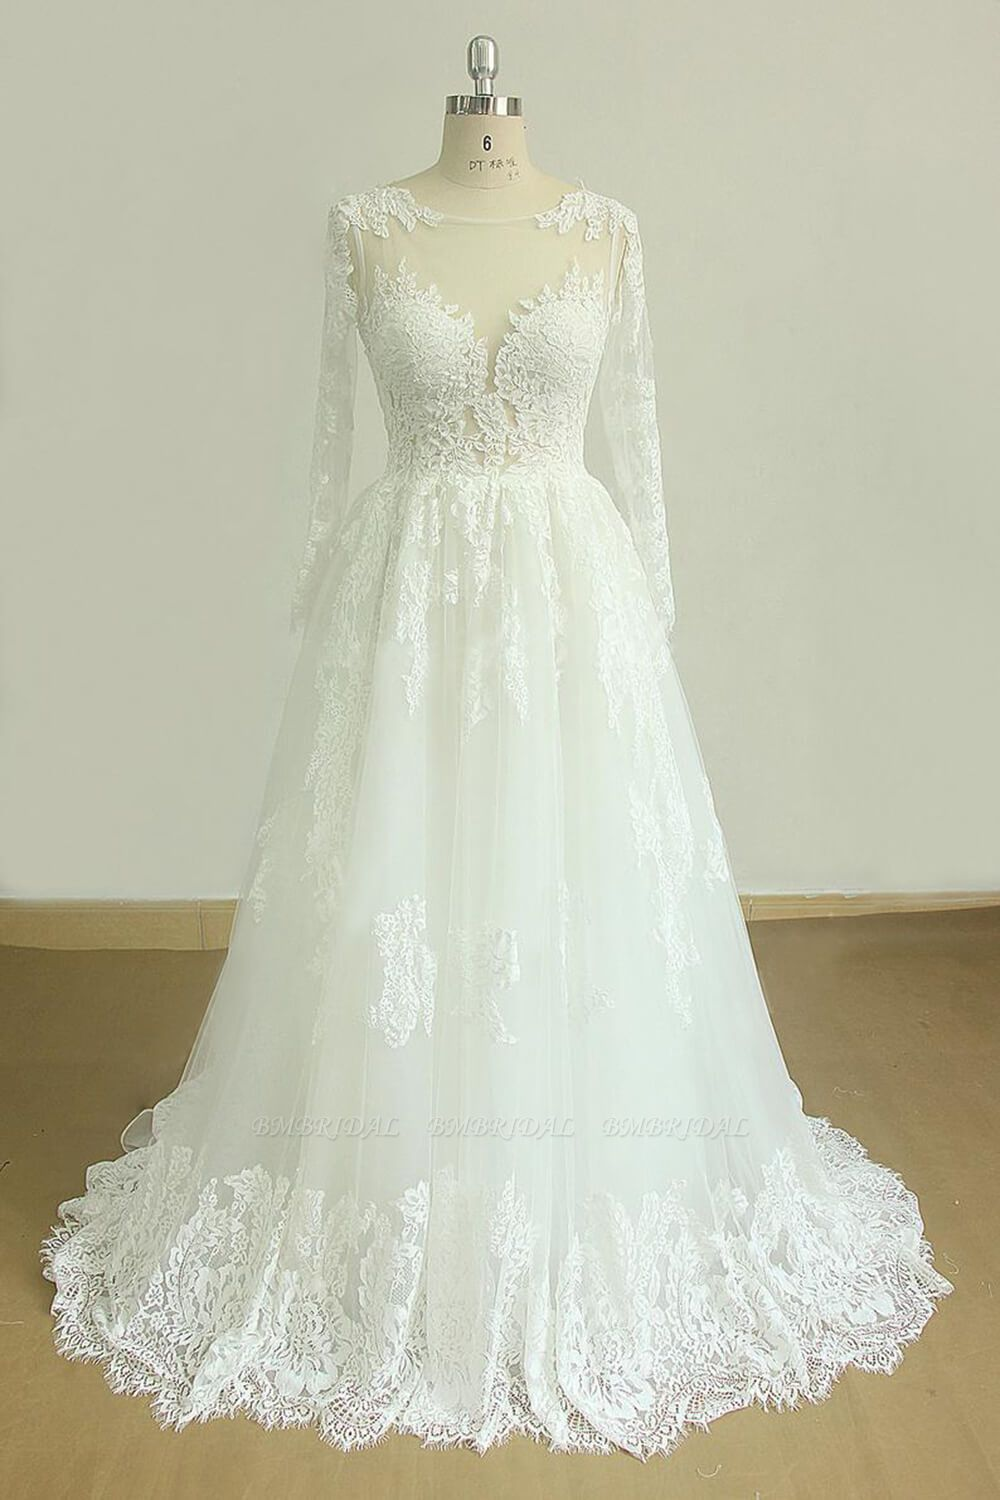 Gorgeous Longsleeves White Appliques Wedding Dress Tulle Lace Jewel Bridal Gown On Sale